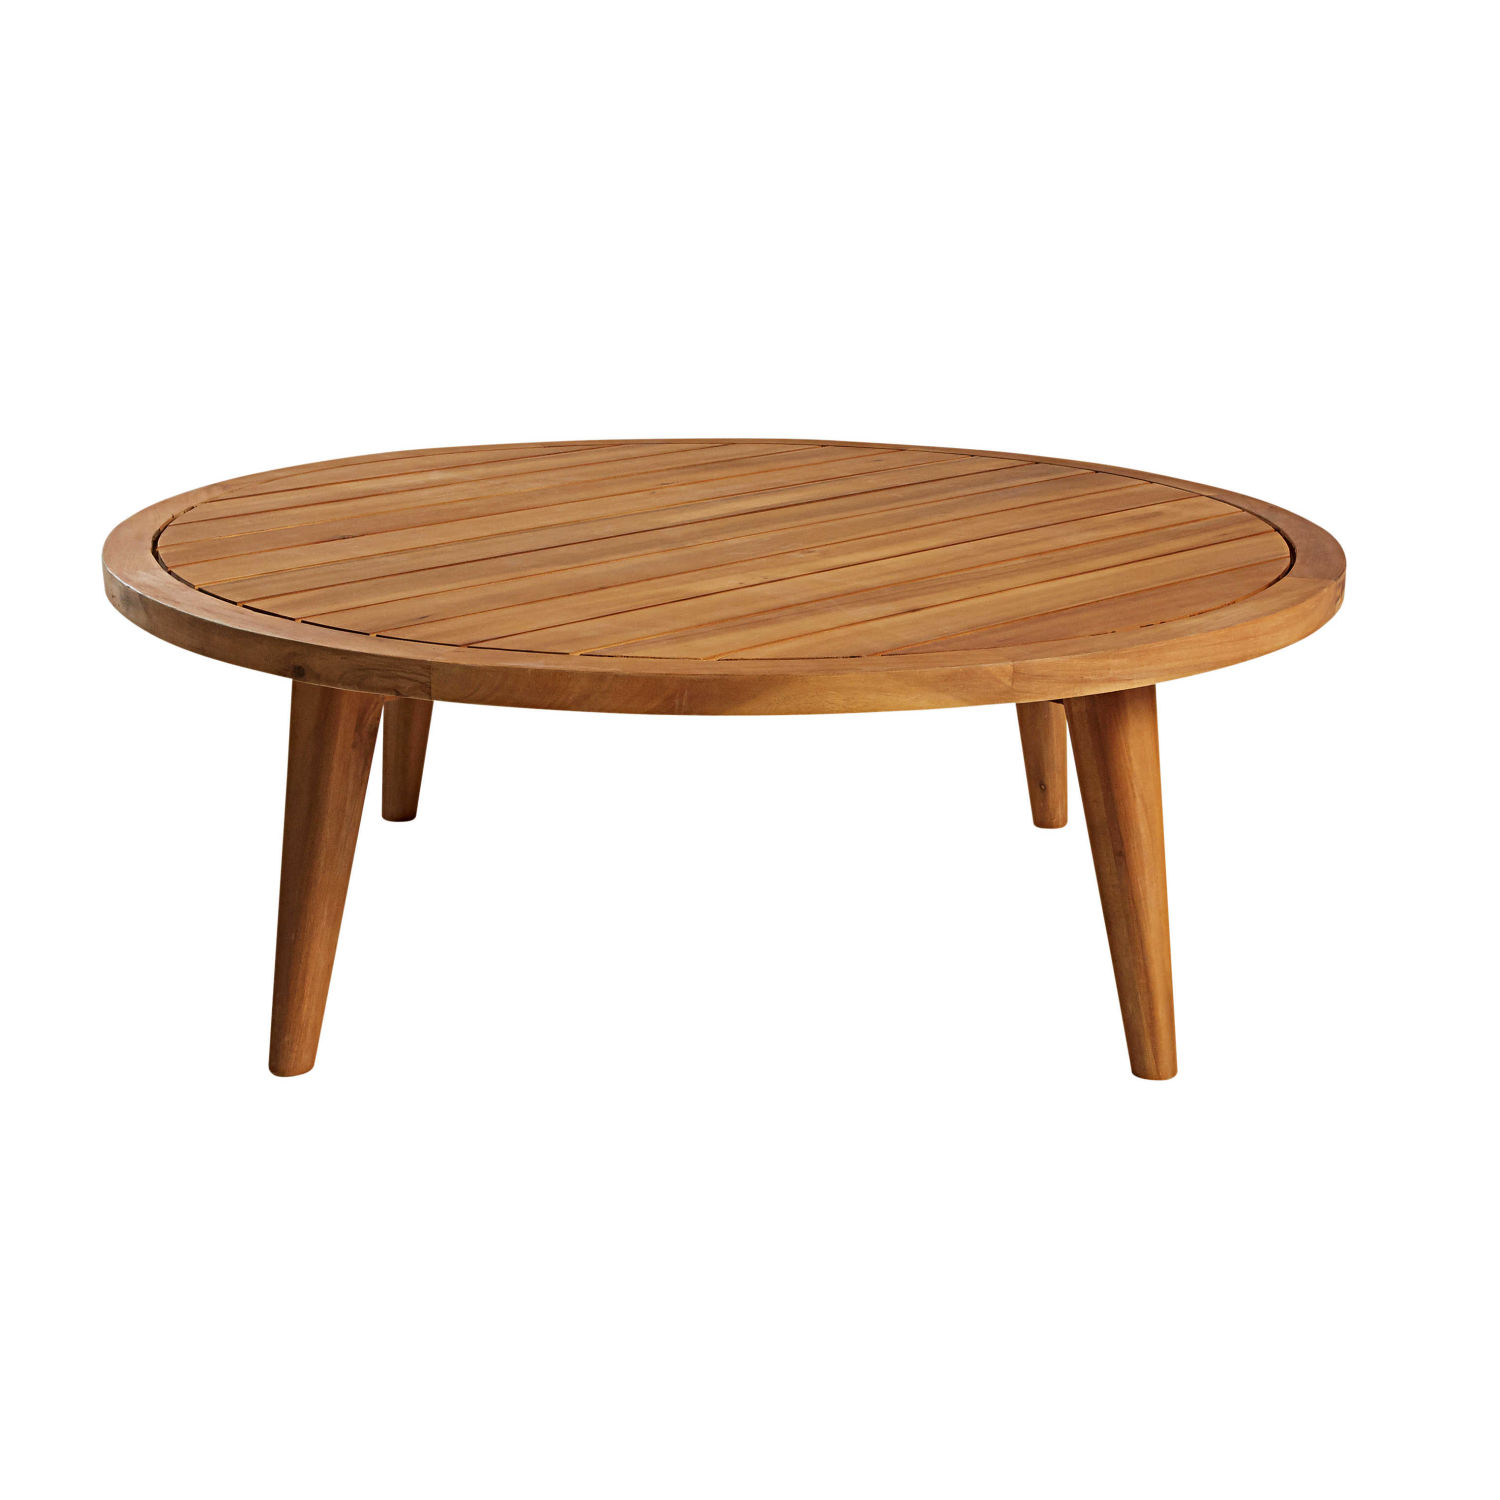 Table basse de jardin ronde en acacia massif maisons du monde for Table basse acacia massif